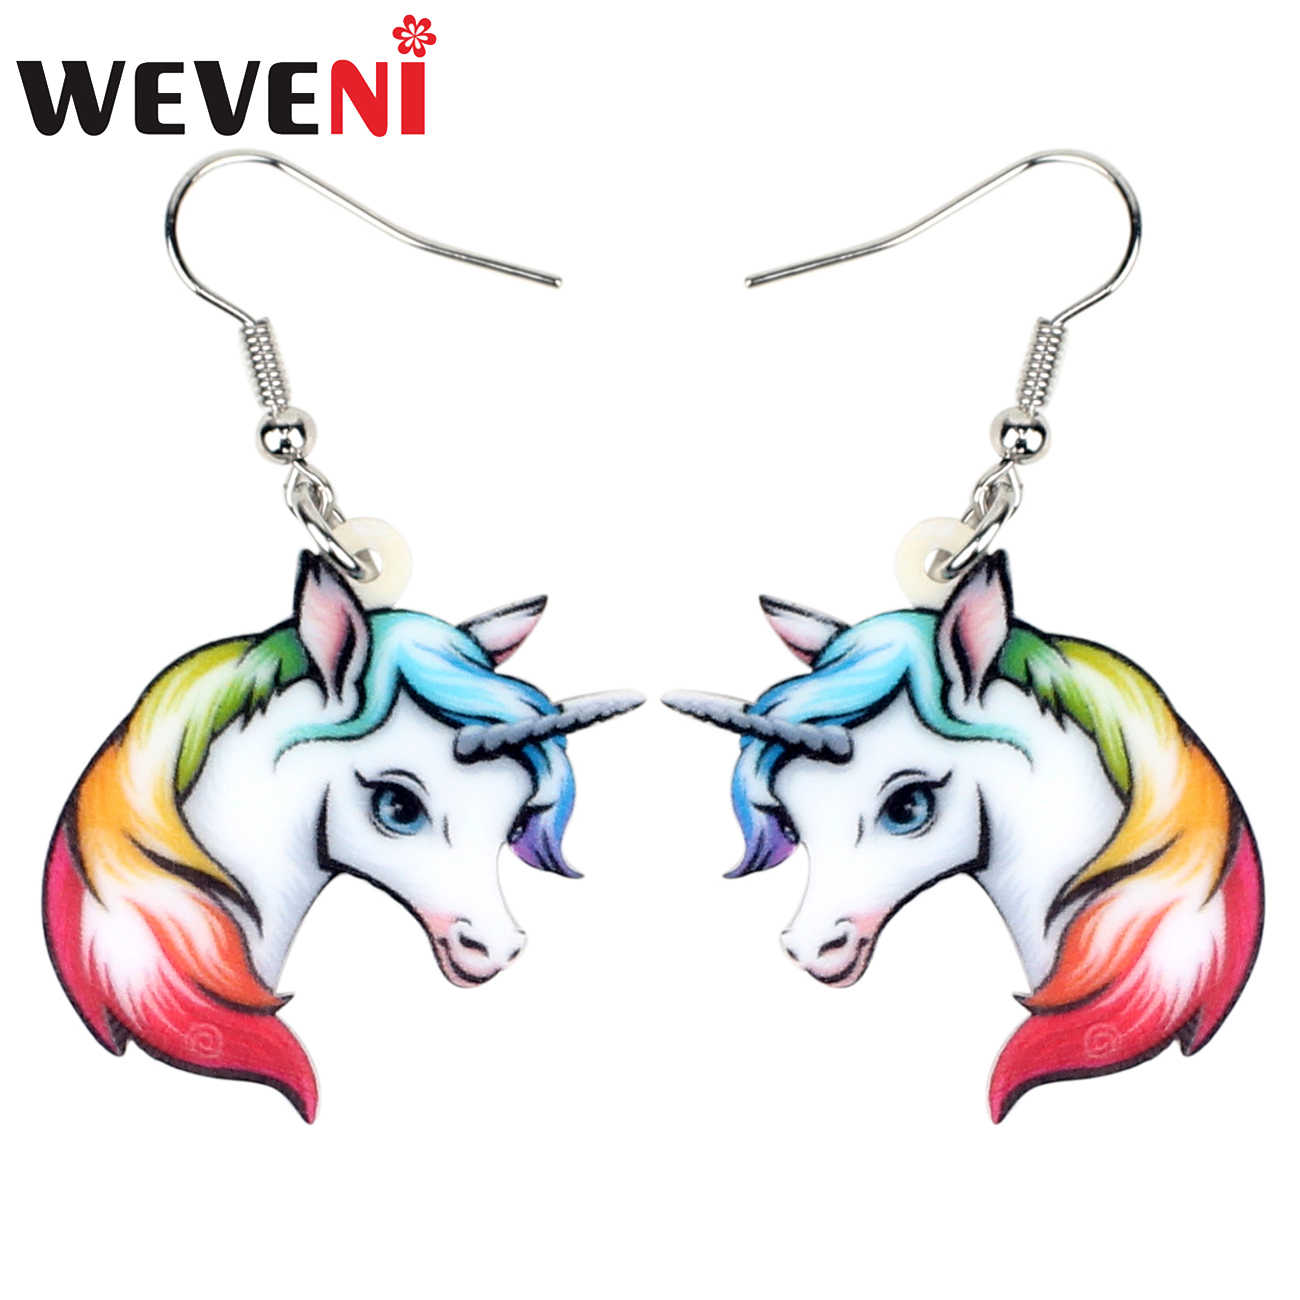 WEVENI Acrylic Anime Rainbow Unicorn Head Earrings Drop Dangle Fashion Animal Jewelry For Women Girls Teen Gift Charms Wholesale